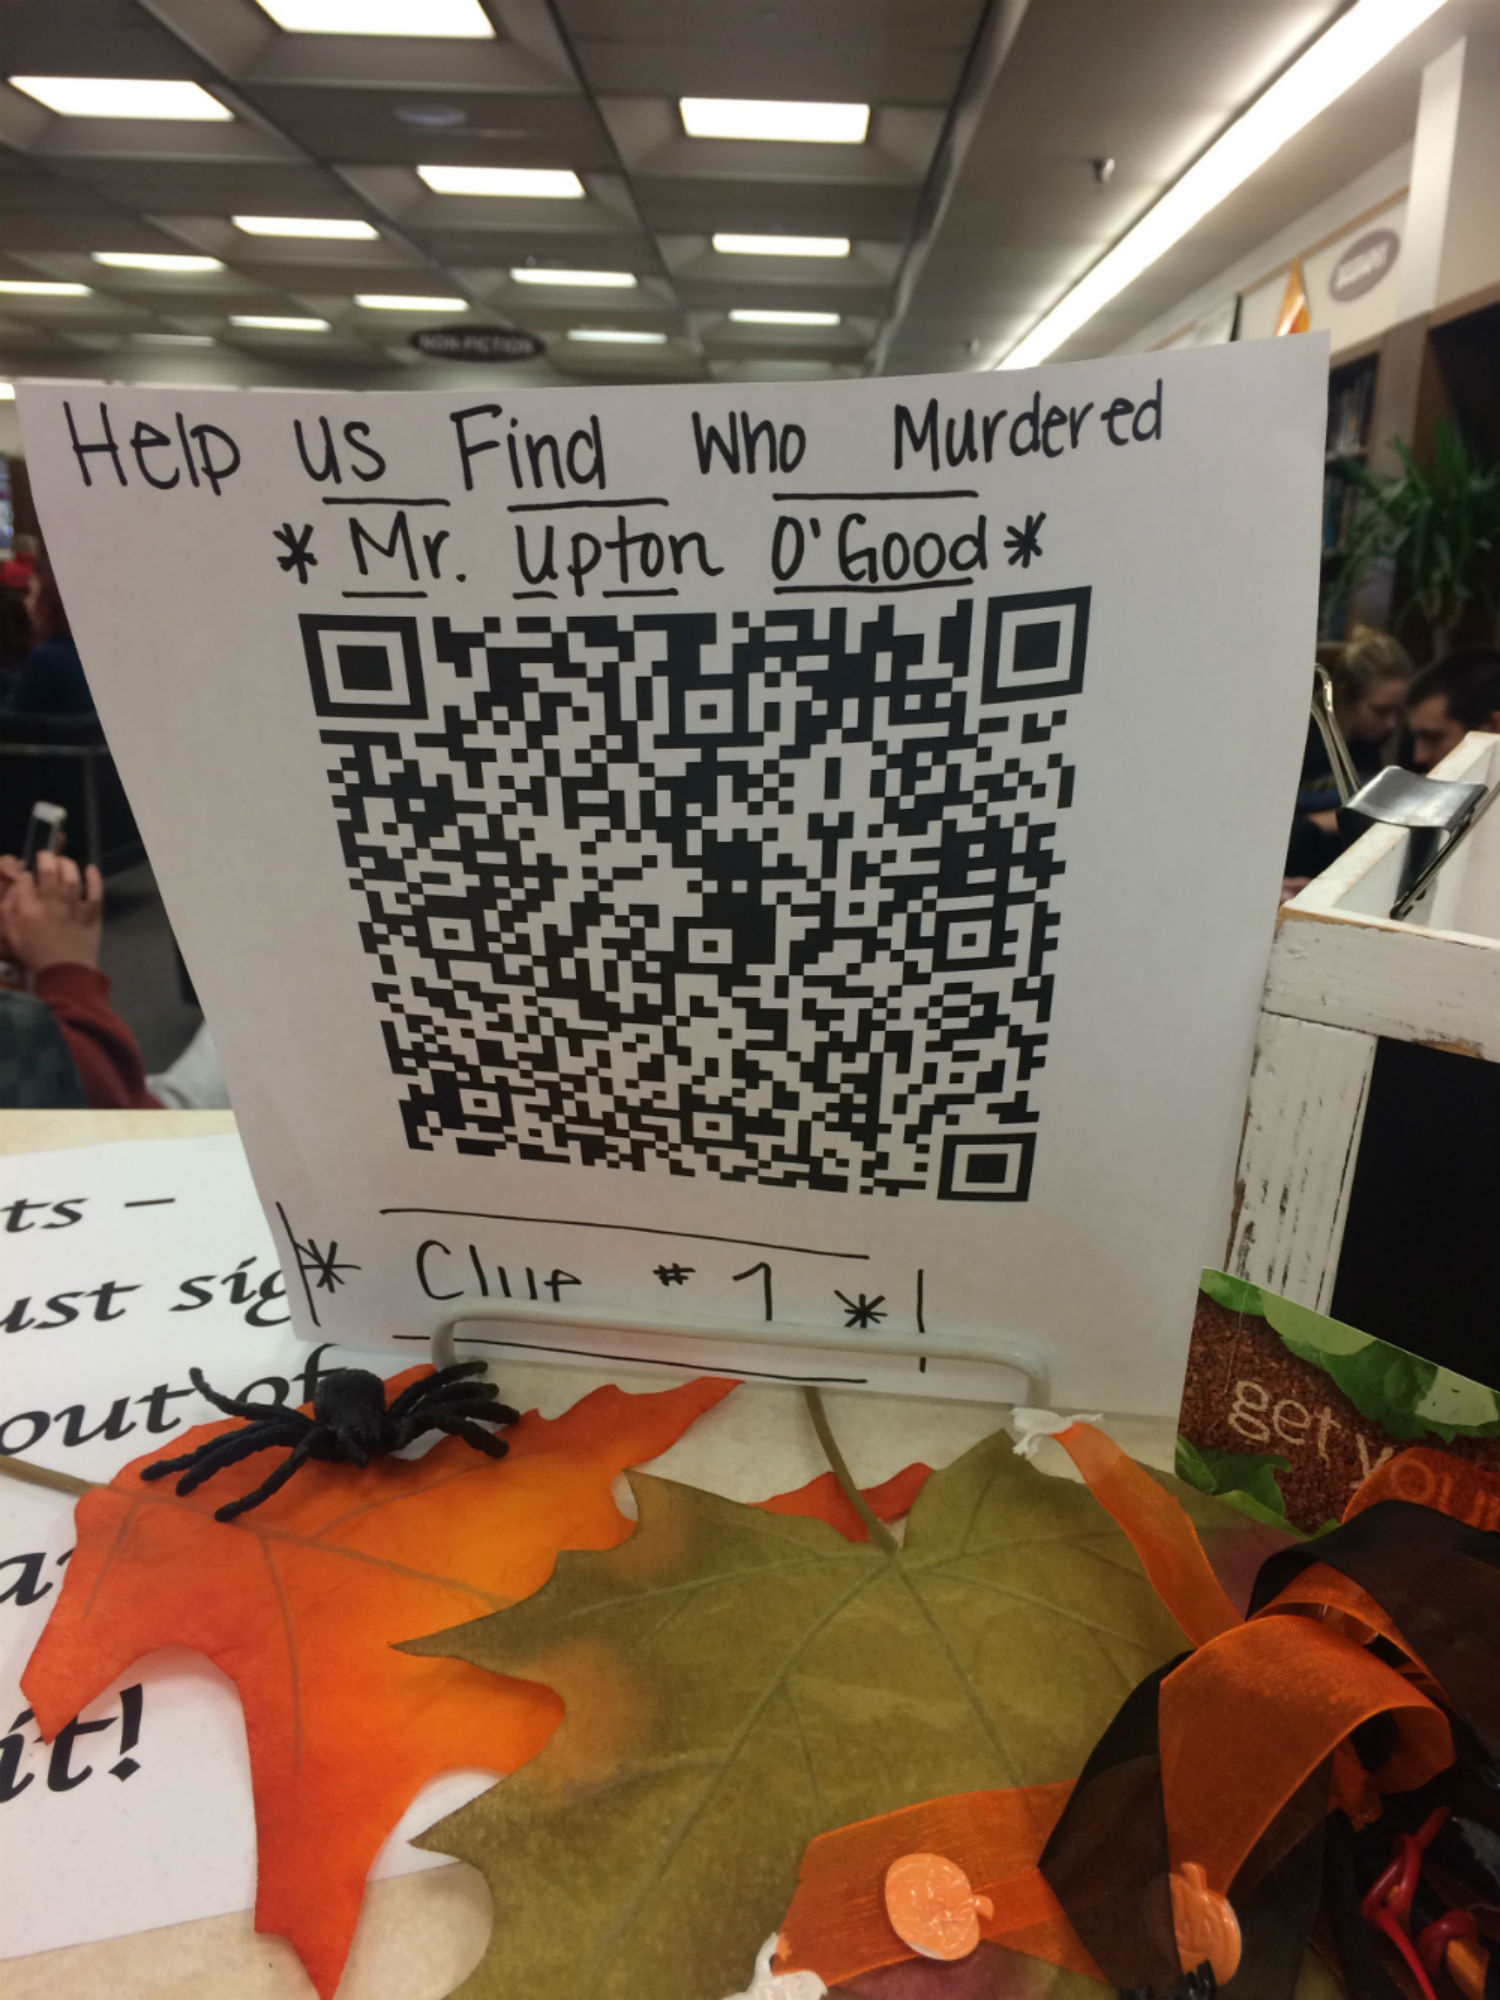 The first clue was found at the front of the library. Students could download a QR code app and scan this code to begin the scavenger hunt. The first clue was: